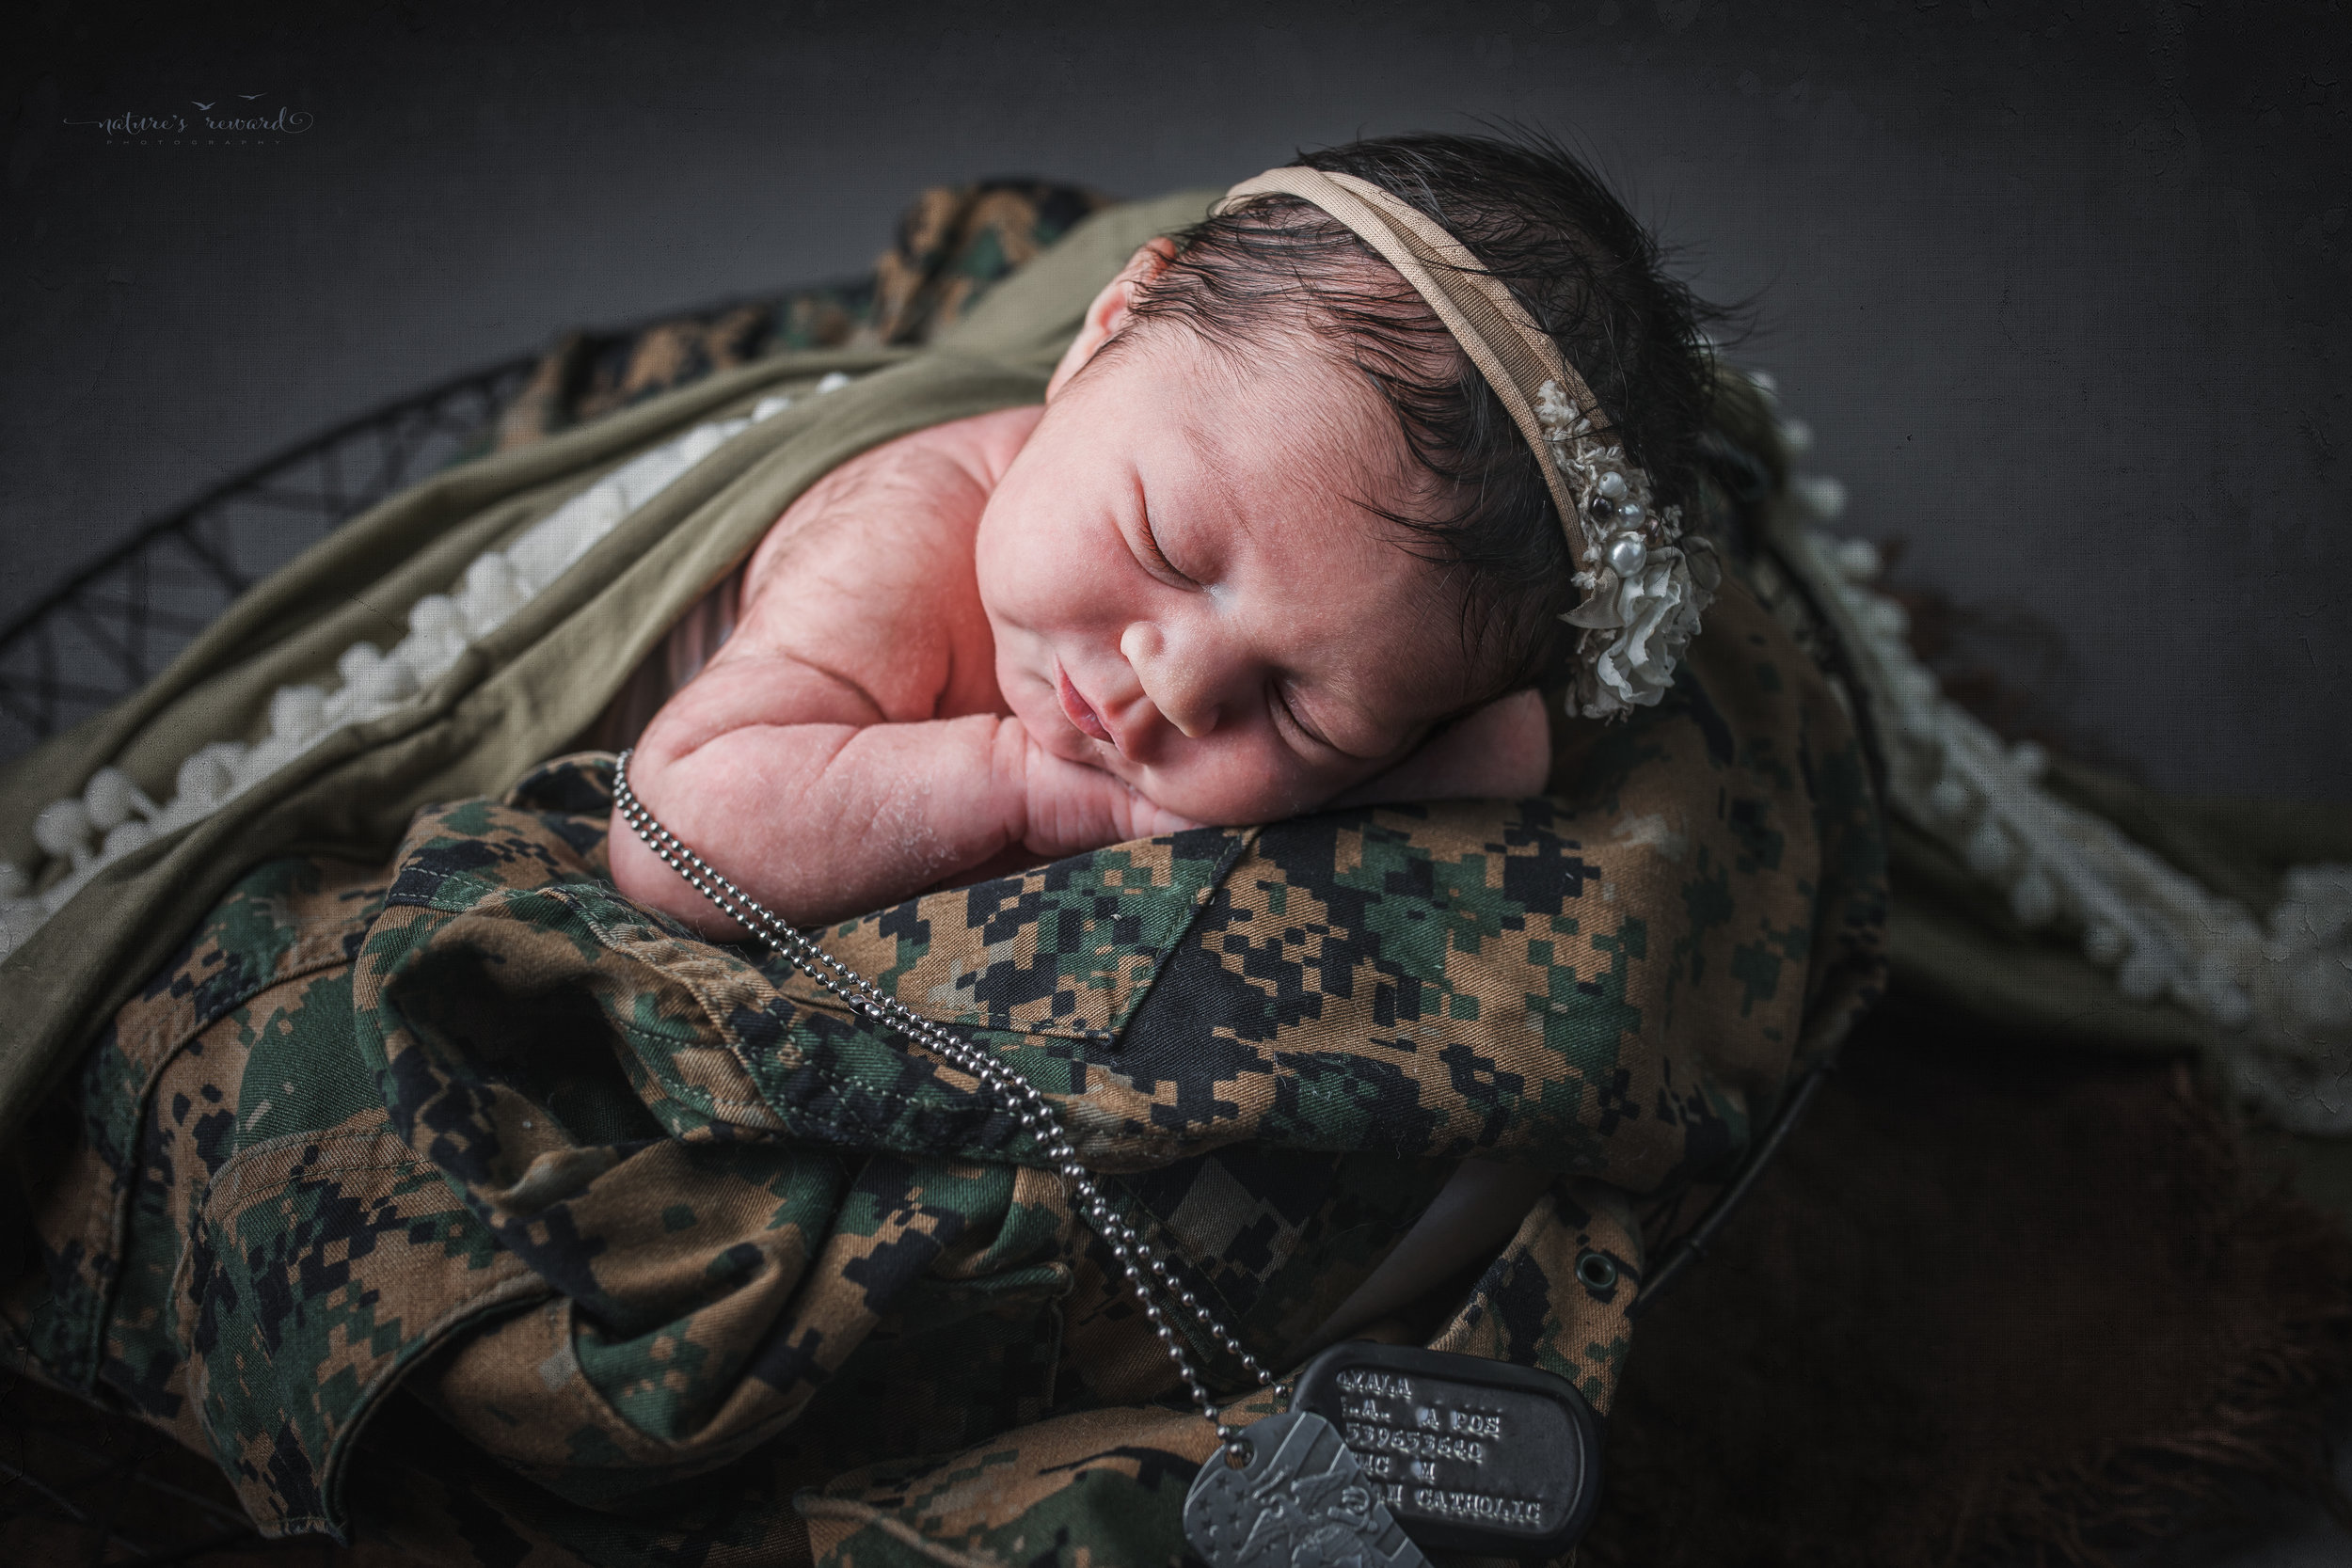 Newborn baby girl  in army green laying on her father's service uniform with his dog tags, a portrait by Nature's Reward Photography